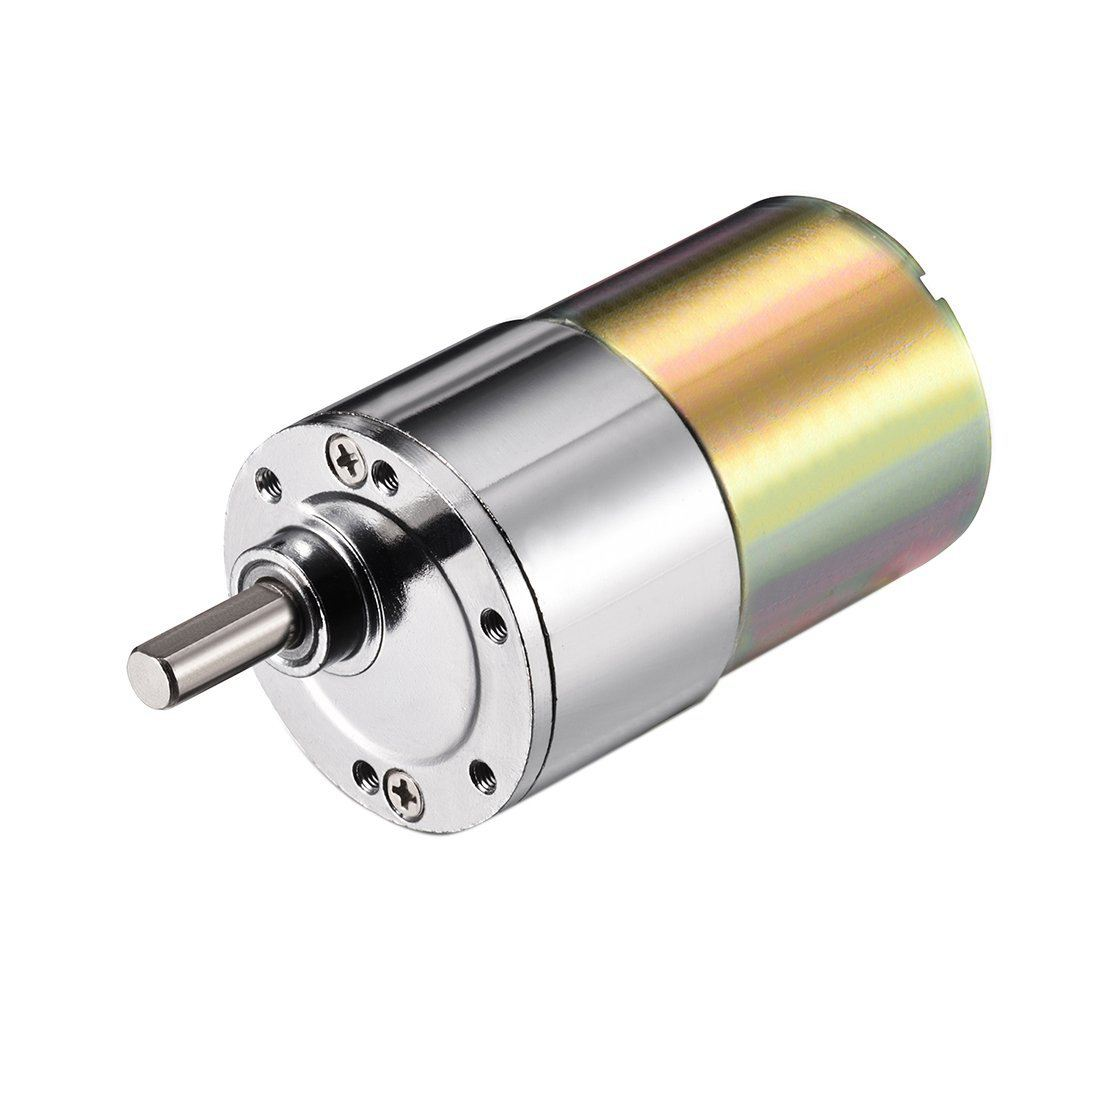 DC 24V 300RPM Mini Gear Box Motor Speed Reduction Electric Gearbox Eccentric Output Shaft цена